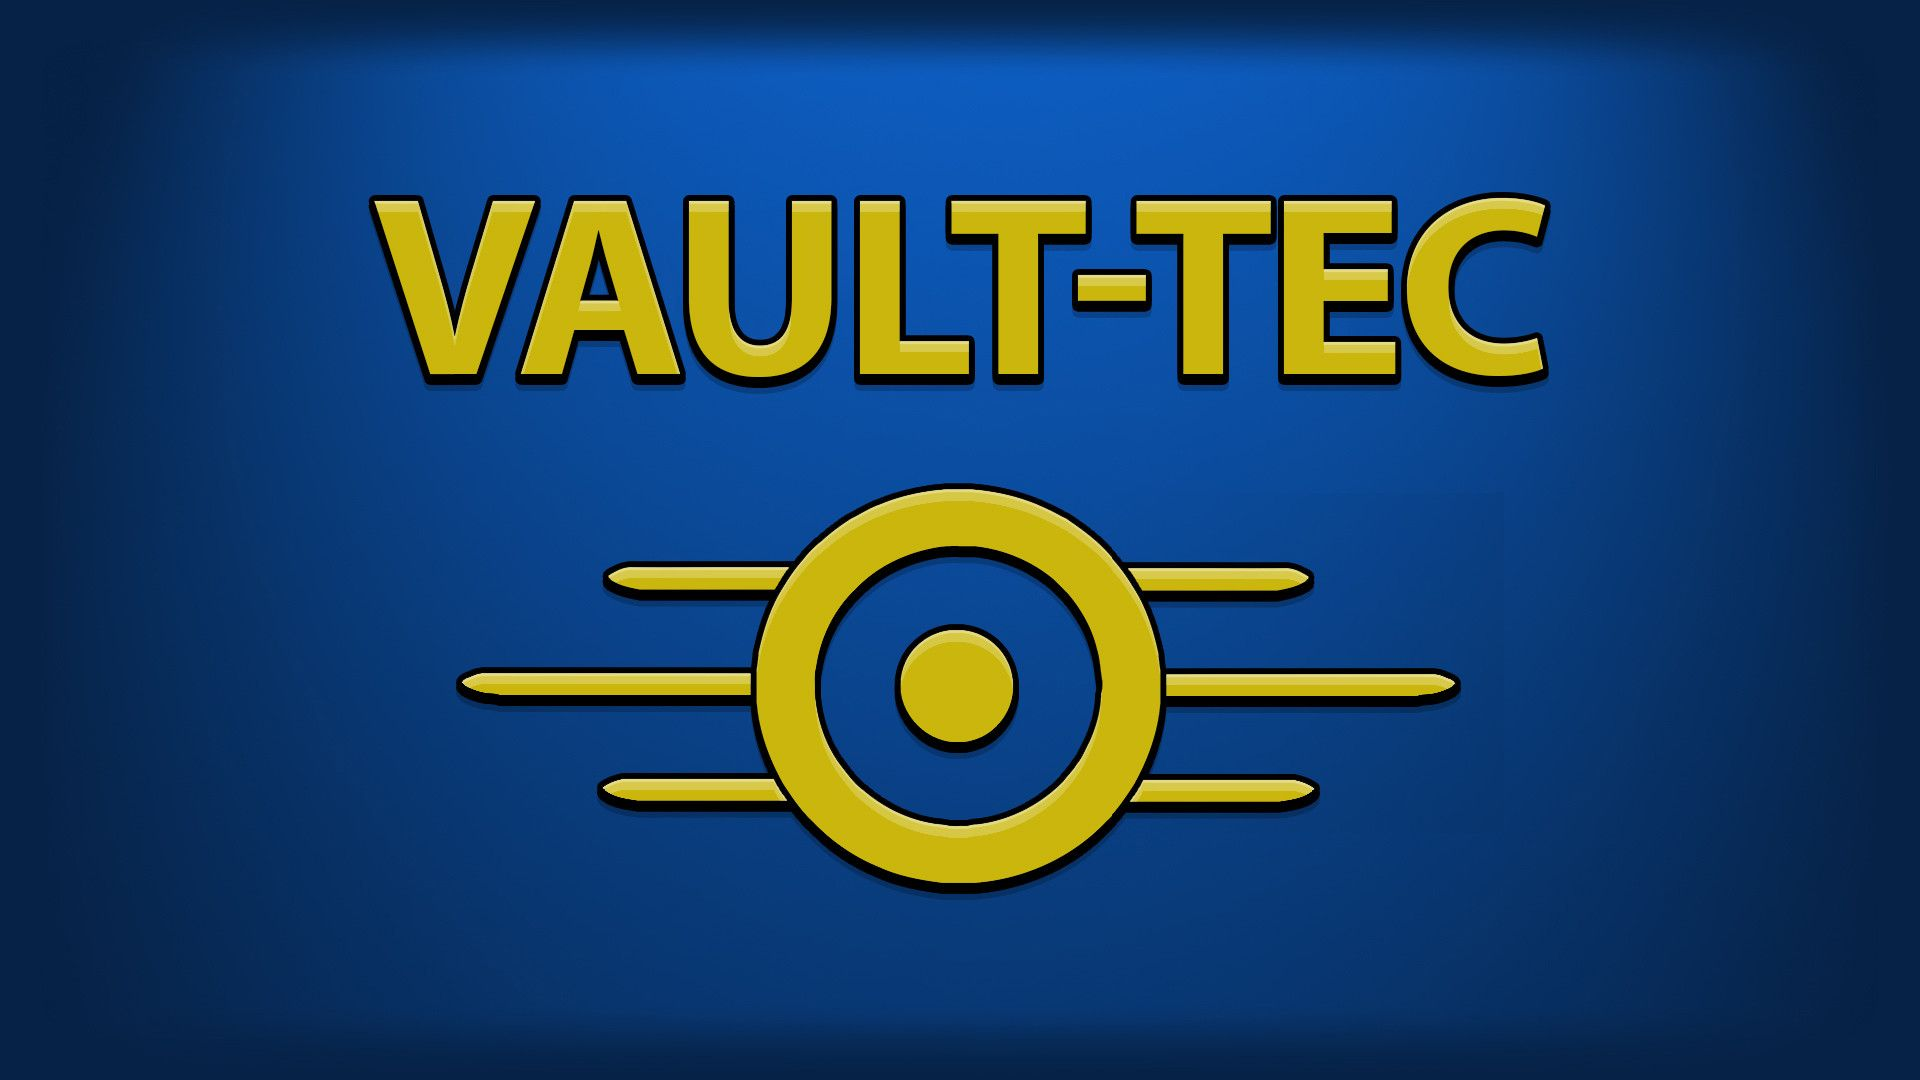 Pin On Fallout 4 Wallpapers